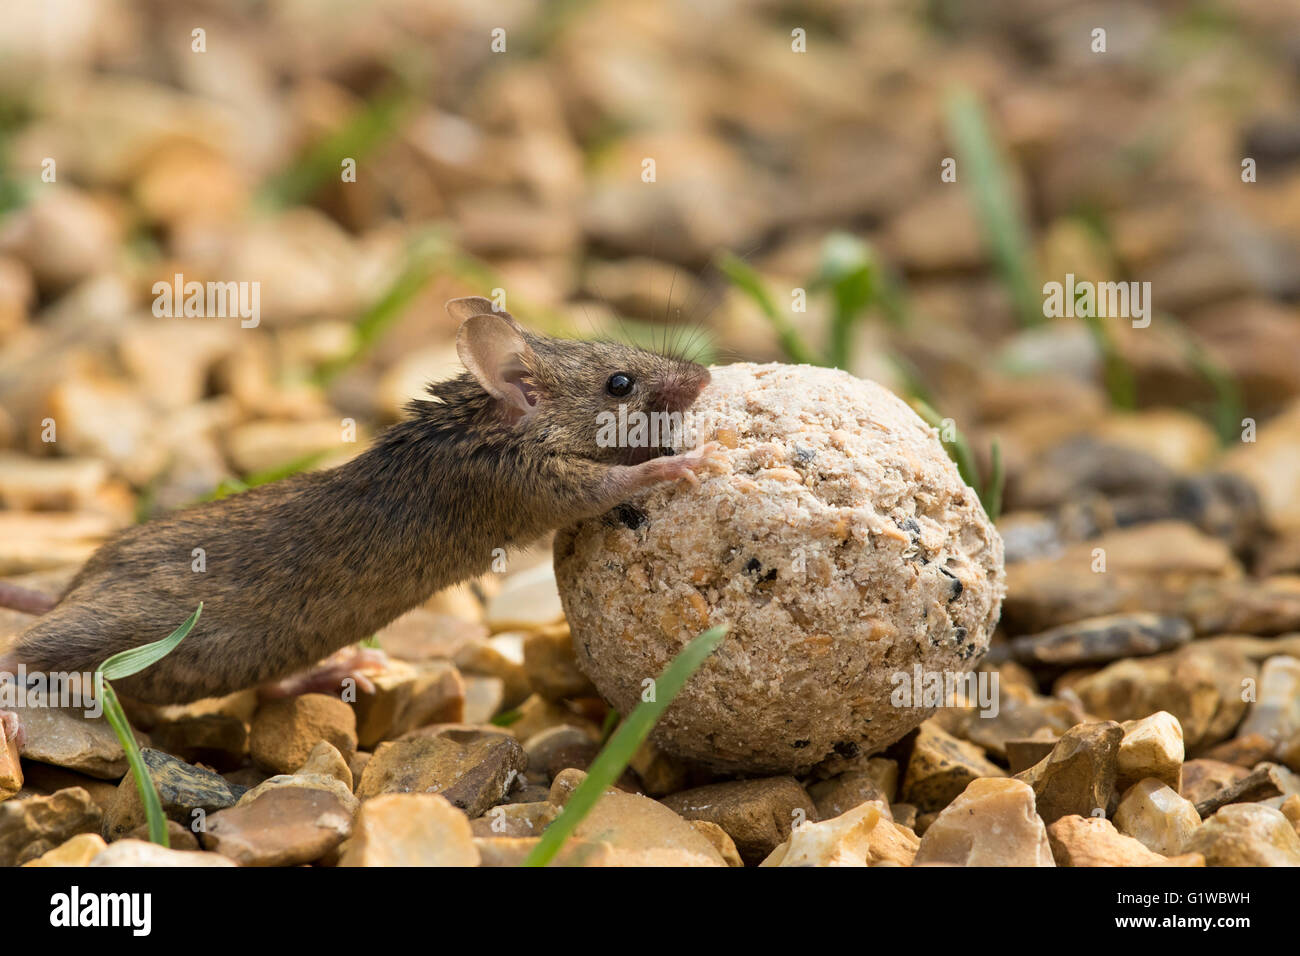 Mouse (Mus Musculus) on rear legs pushing fat-ball along gravel with blades of grass. day, side view UK garden - Stock Image